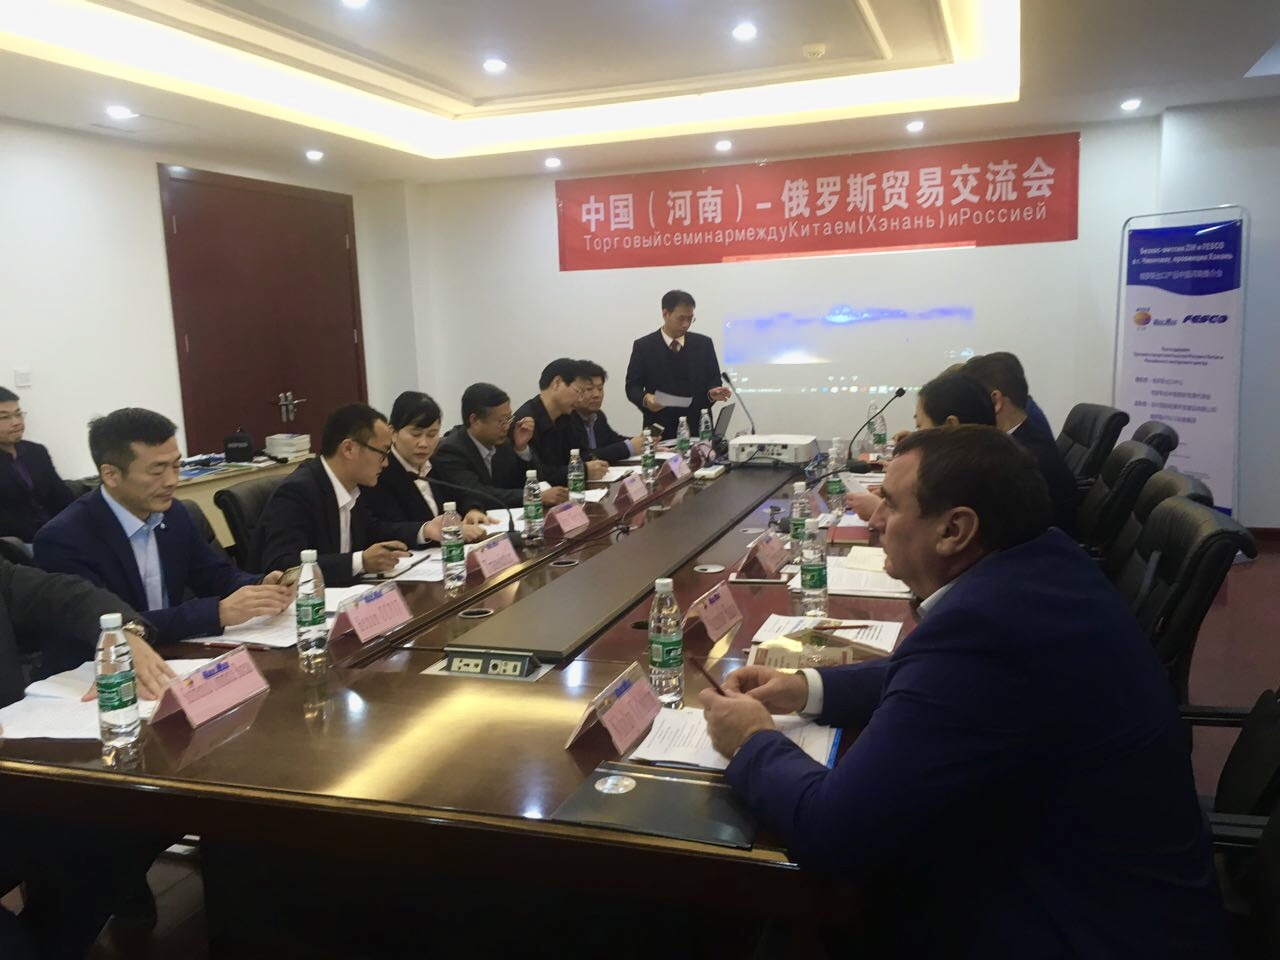 FESCO held a business mission in Henan province with support of the Trade Mission of Russia in China and the Russian Export Center